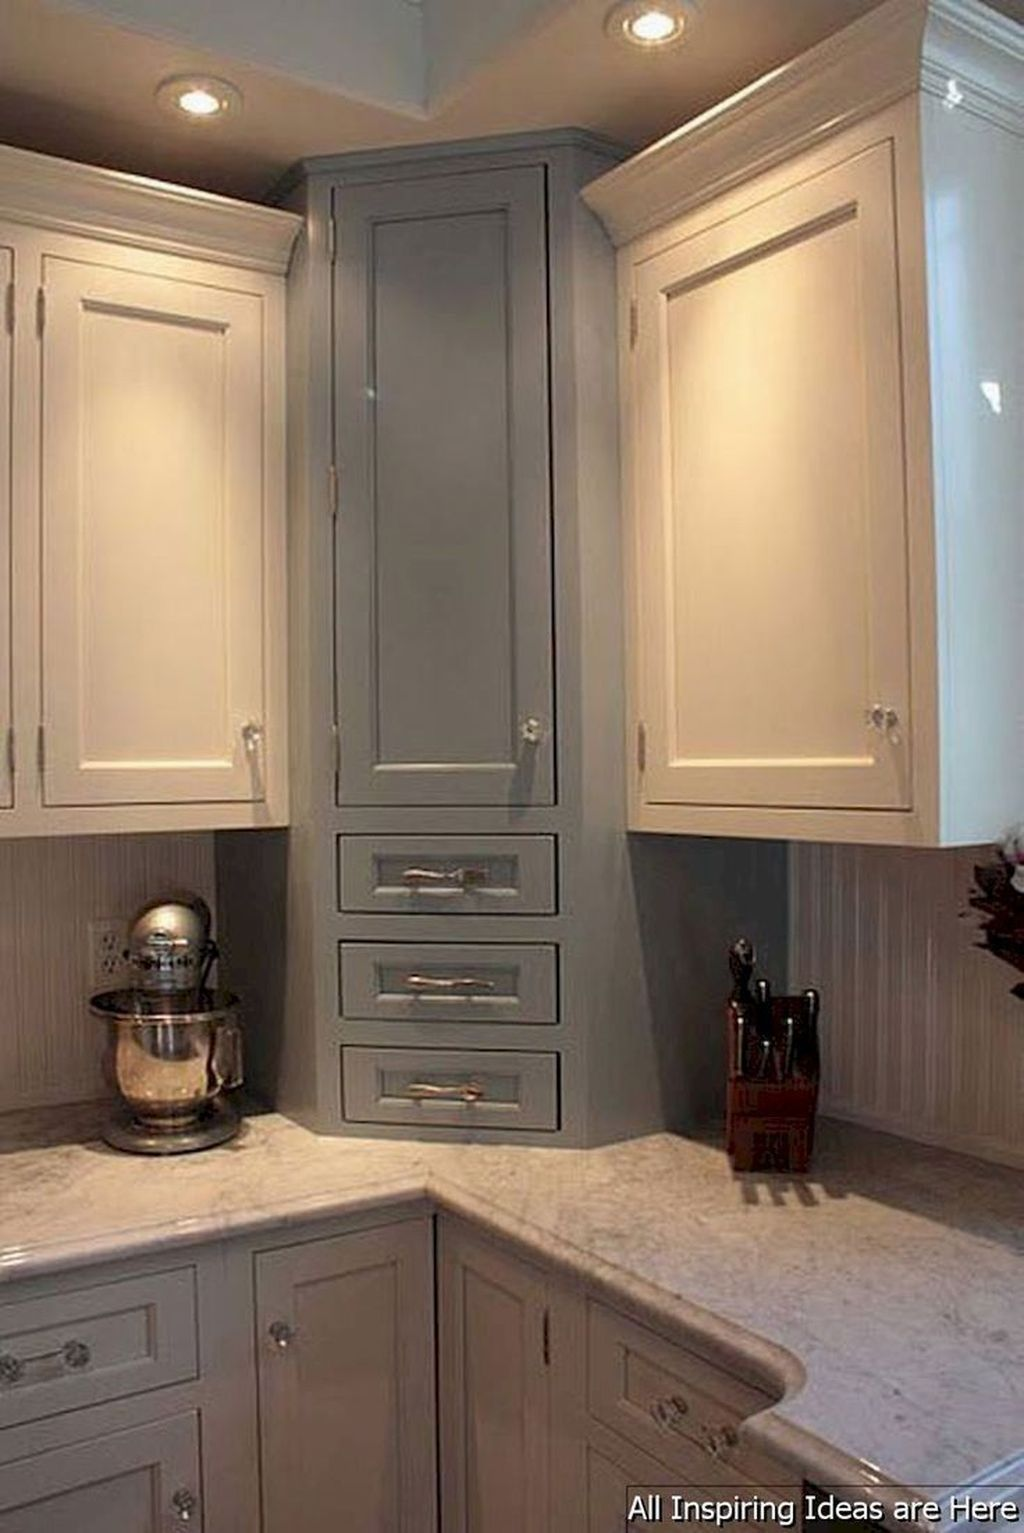 20 small kitchen ideas with french country style olympia kitchen rh pinterest com